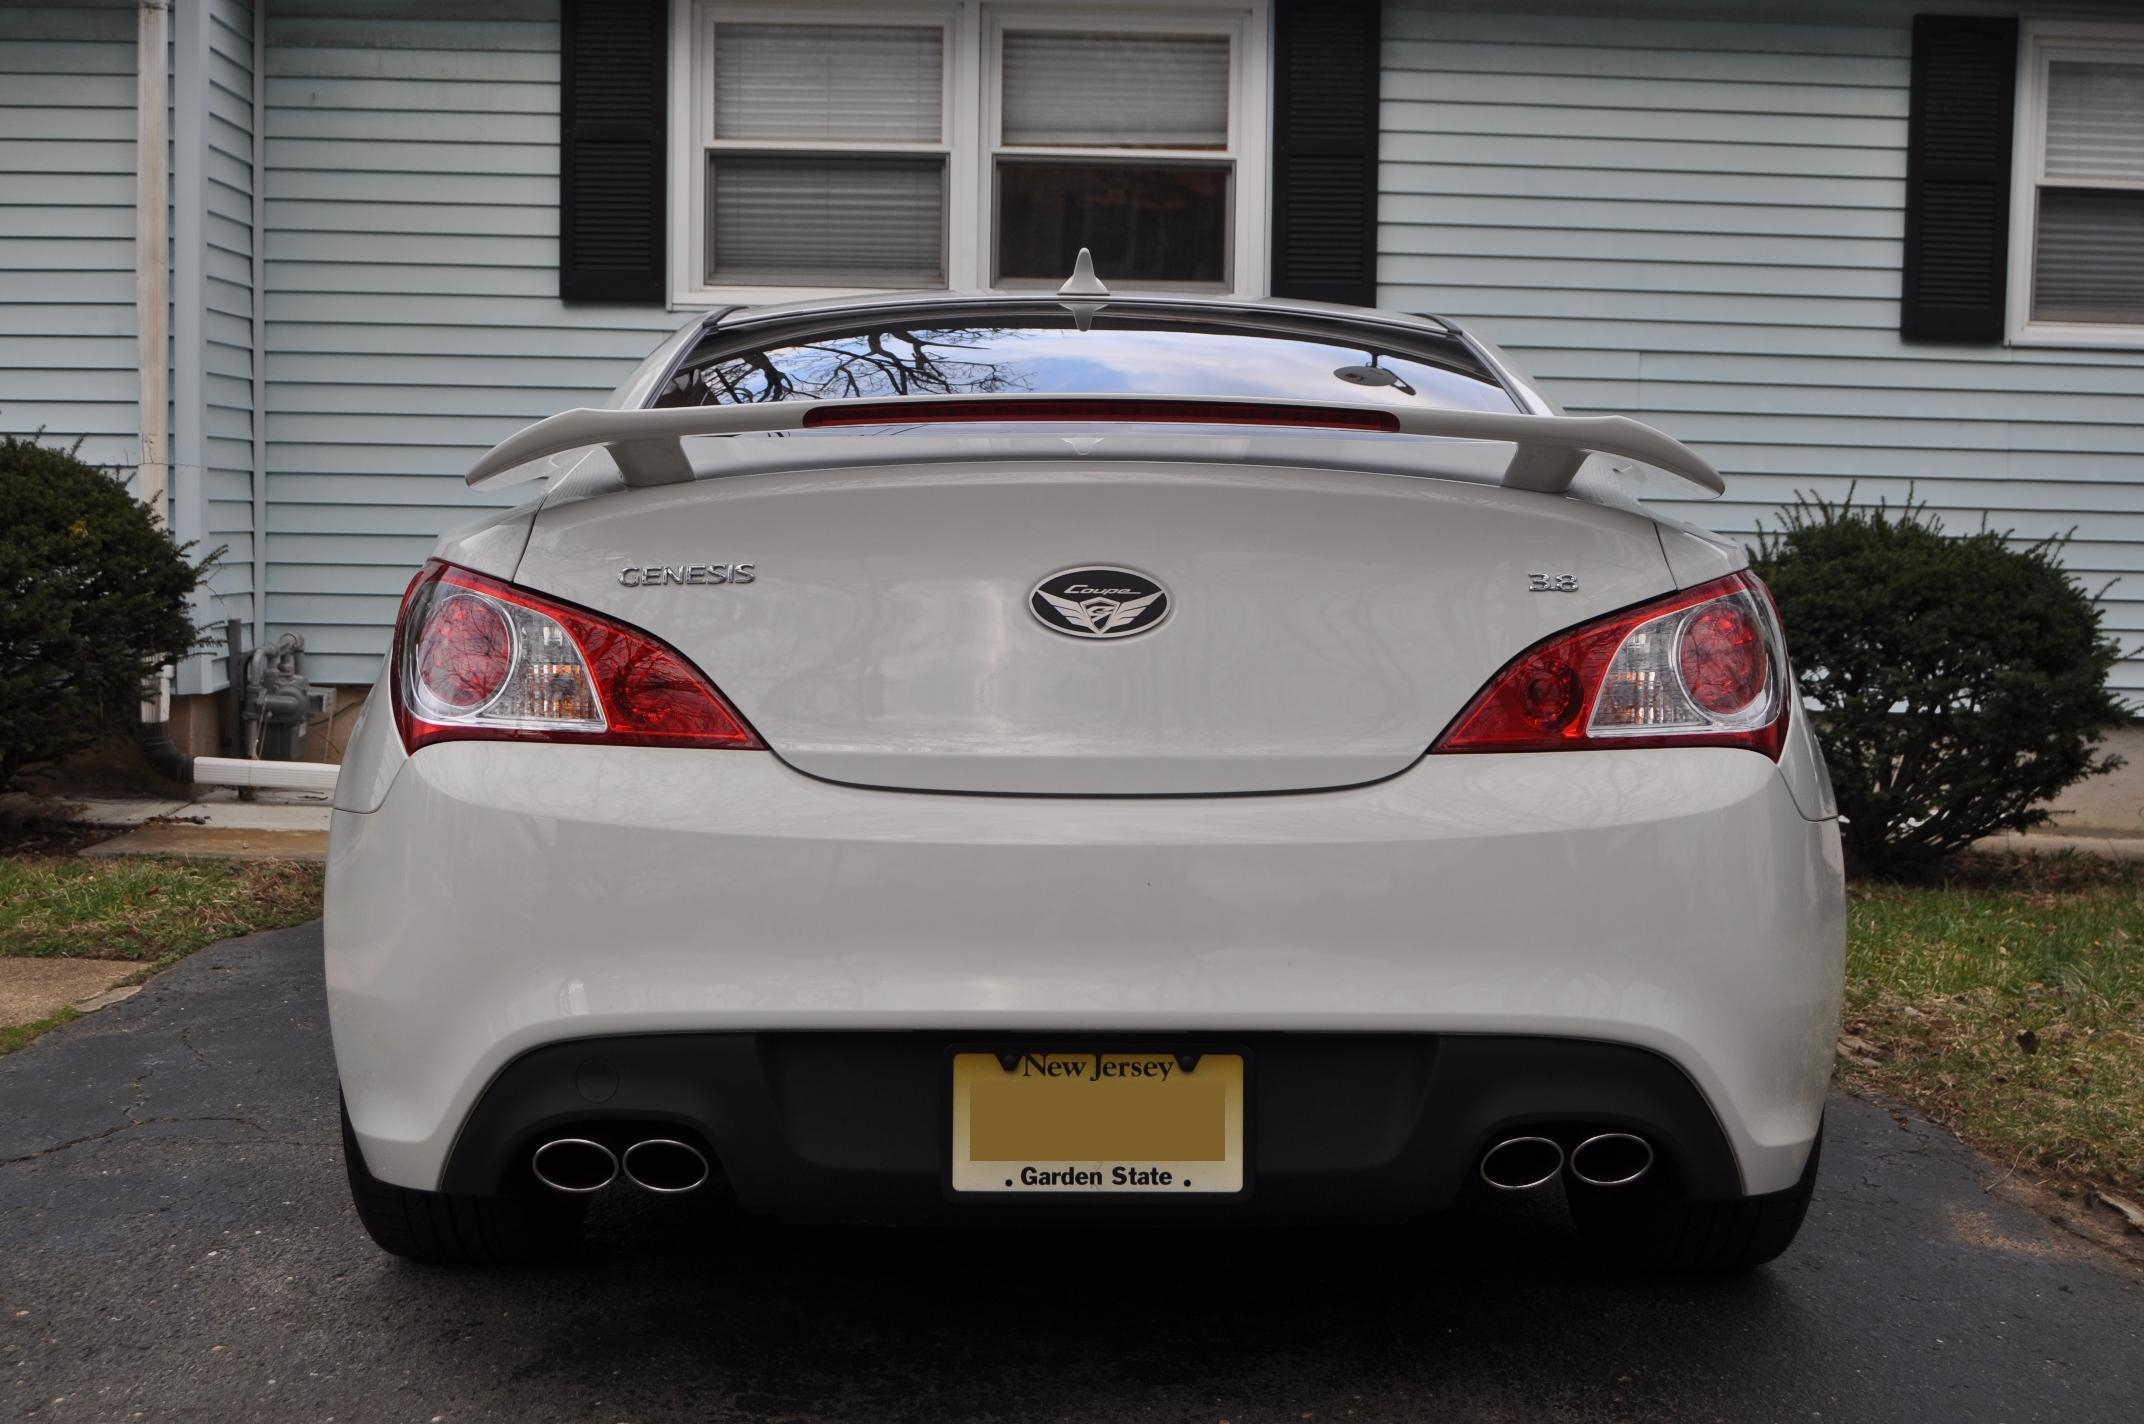 Another Ghetto2315 2010 Hyundai Genesis Coupe post... - 15064631